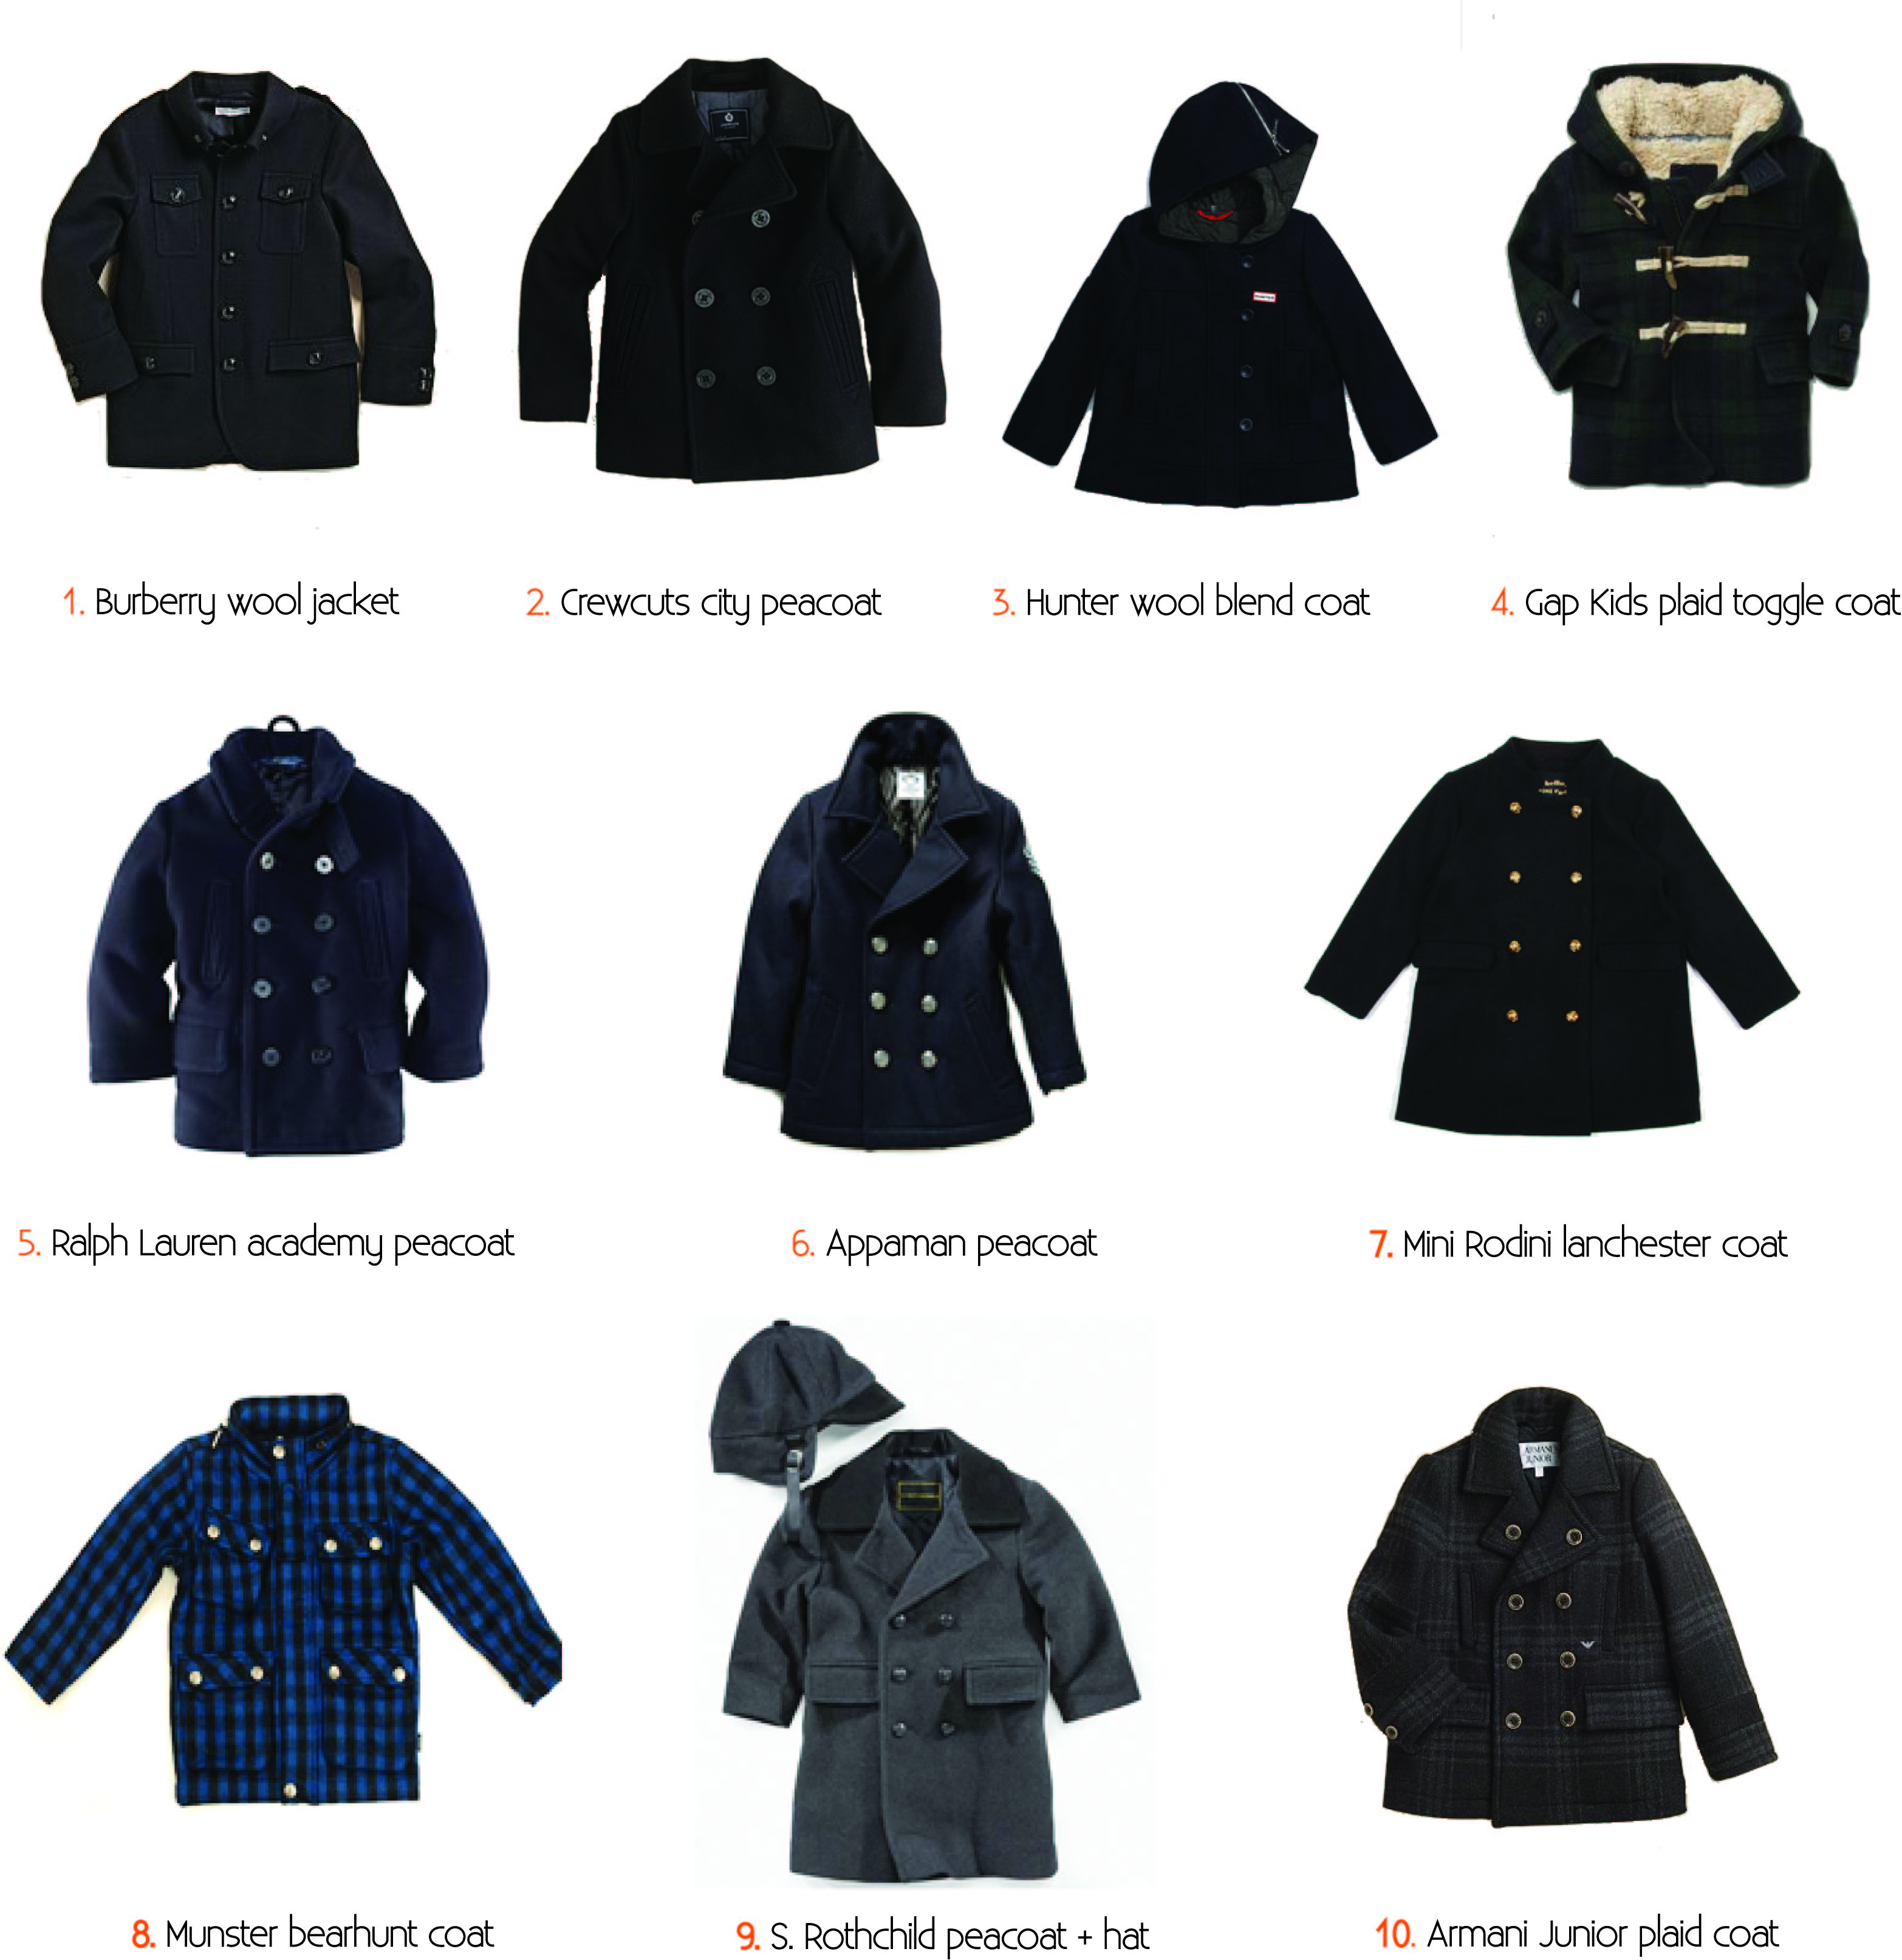 Winter Jacket Styles EbBNih